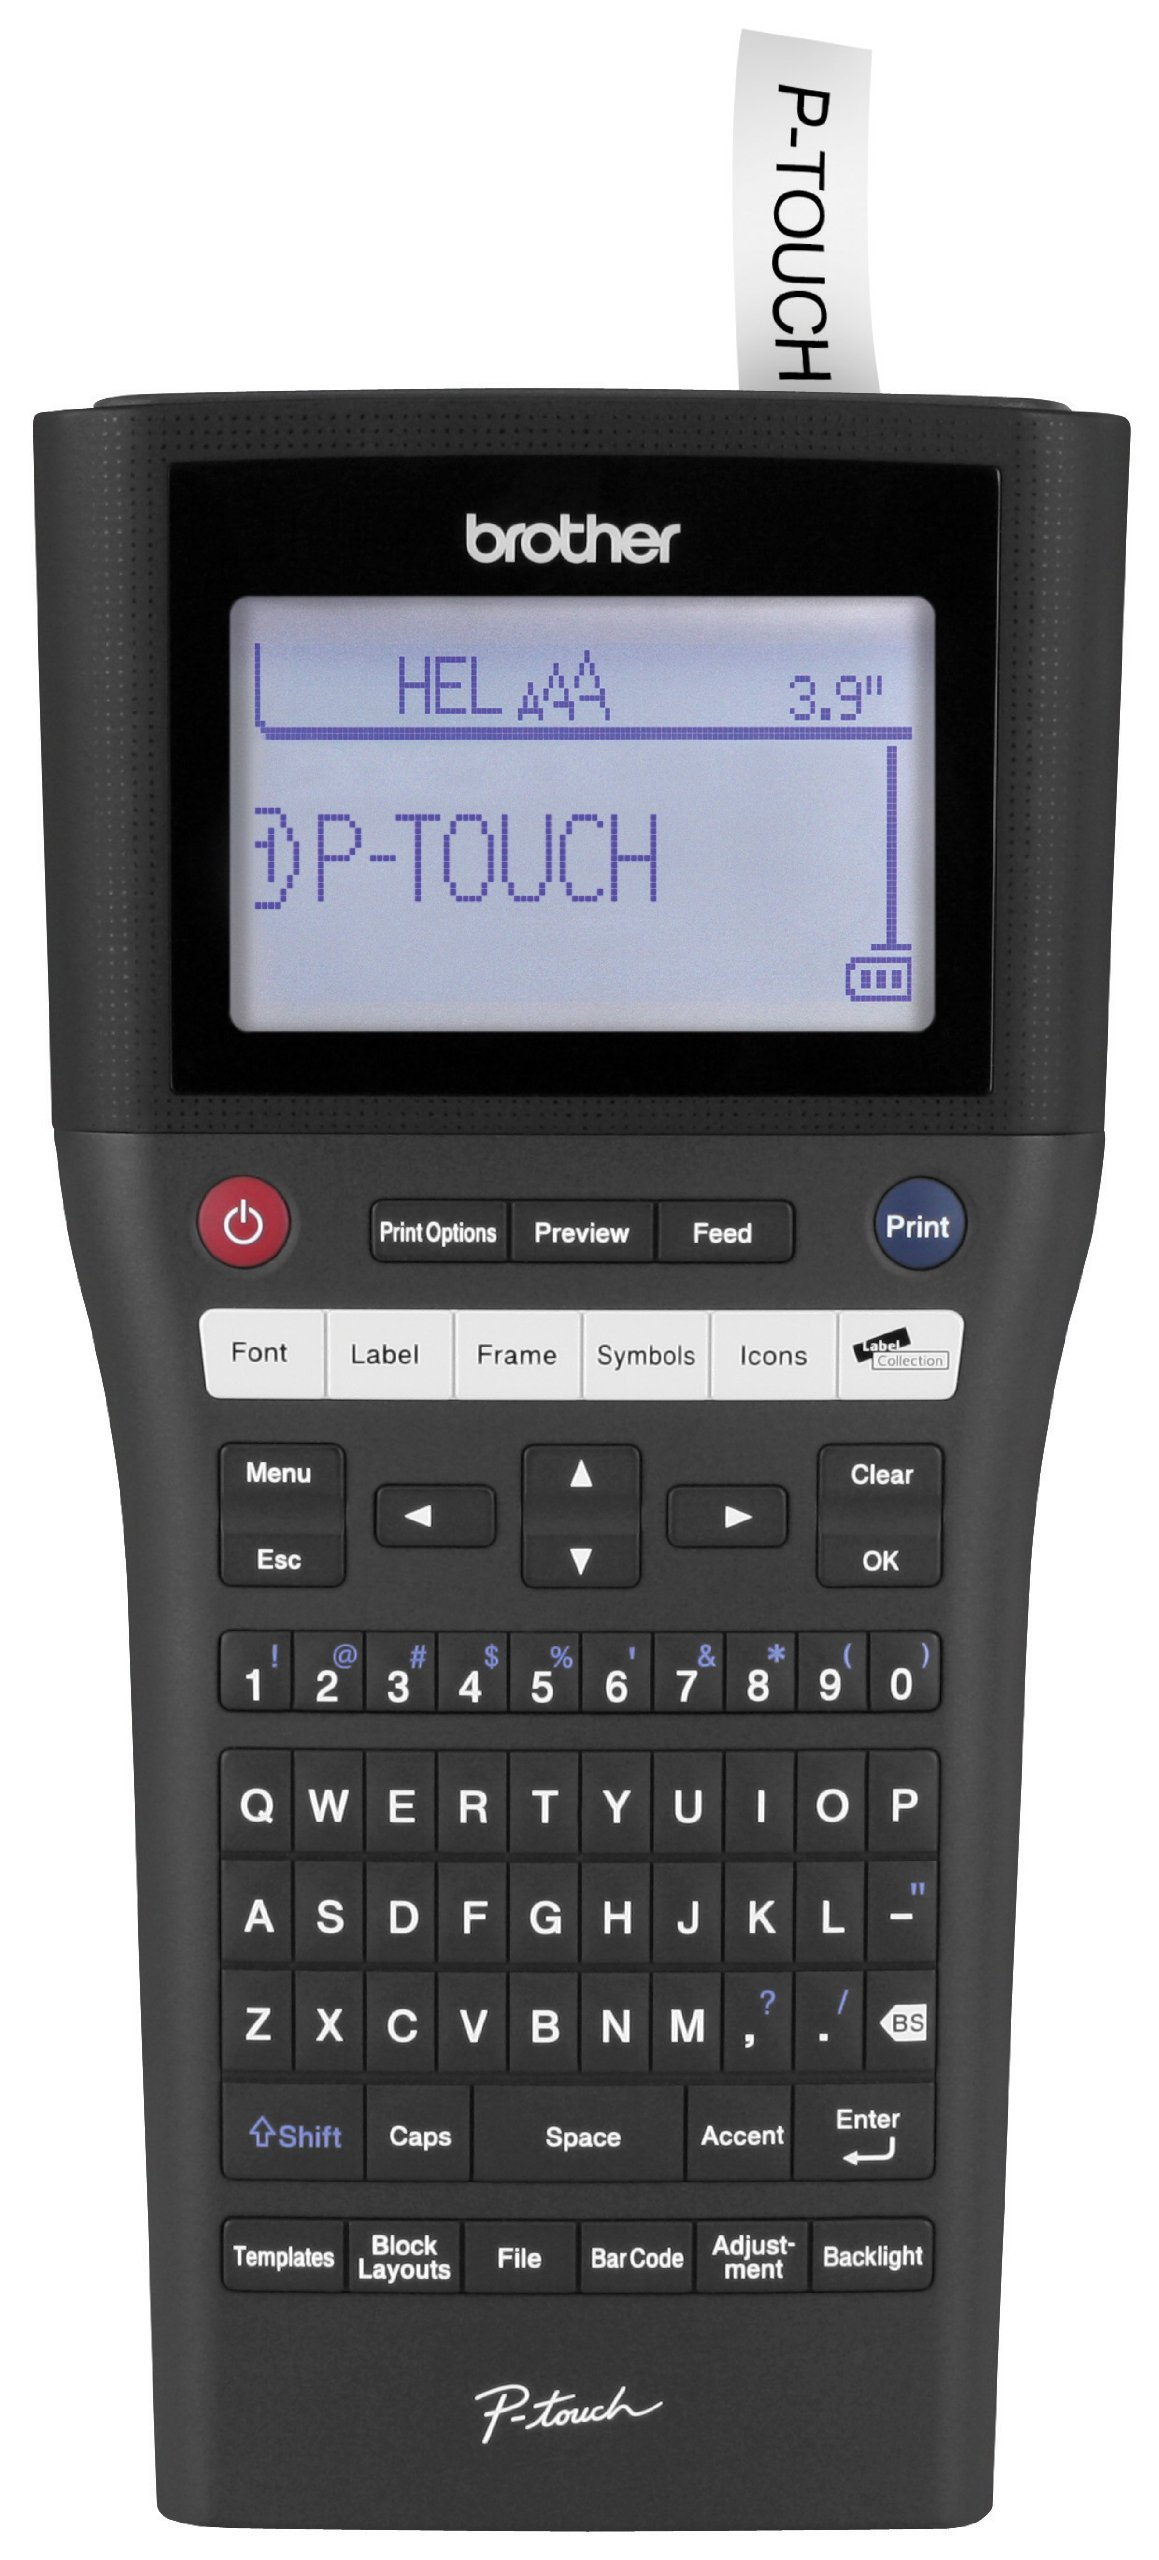 Brother P-touch Rechargeable, Take-It-Anywhere Label Maker with PC-Connectivity (PT-H500LI)